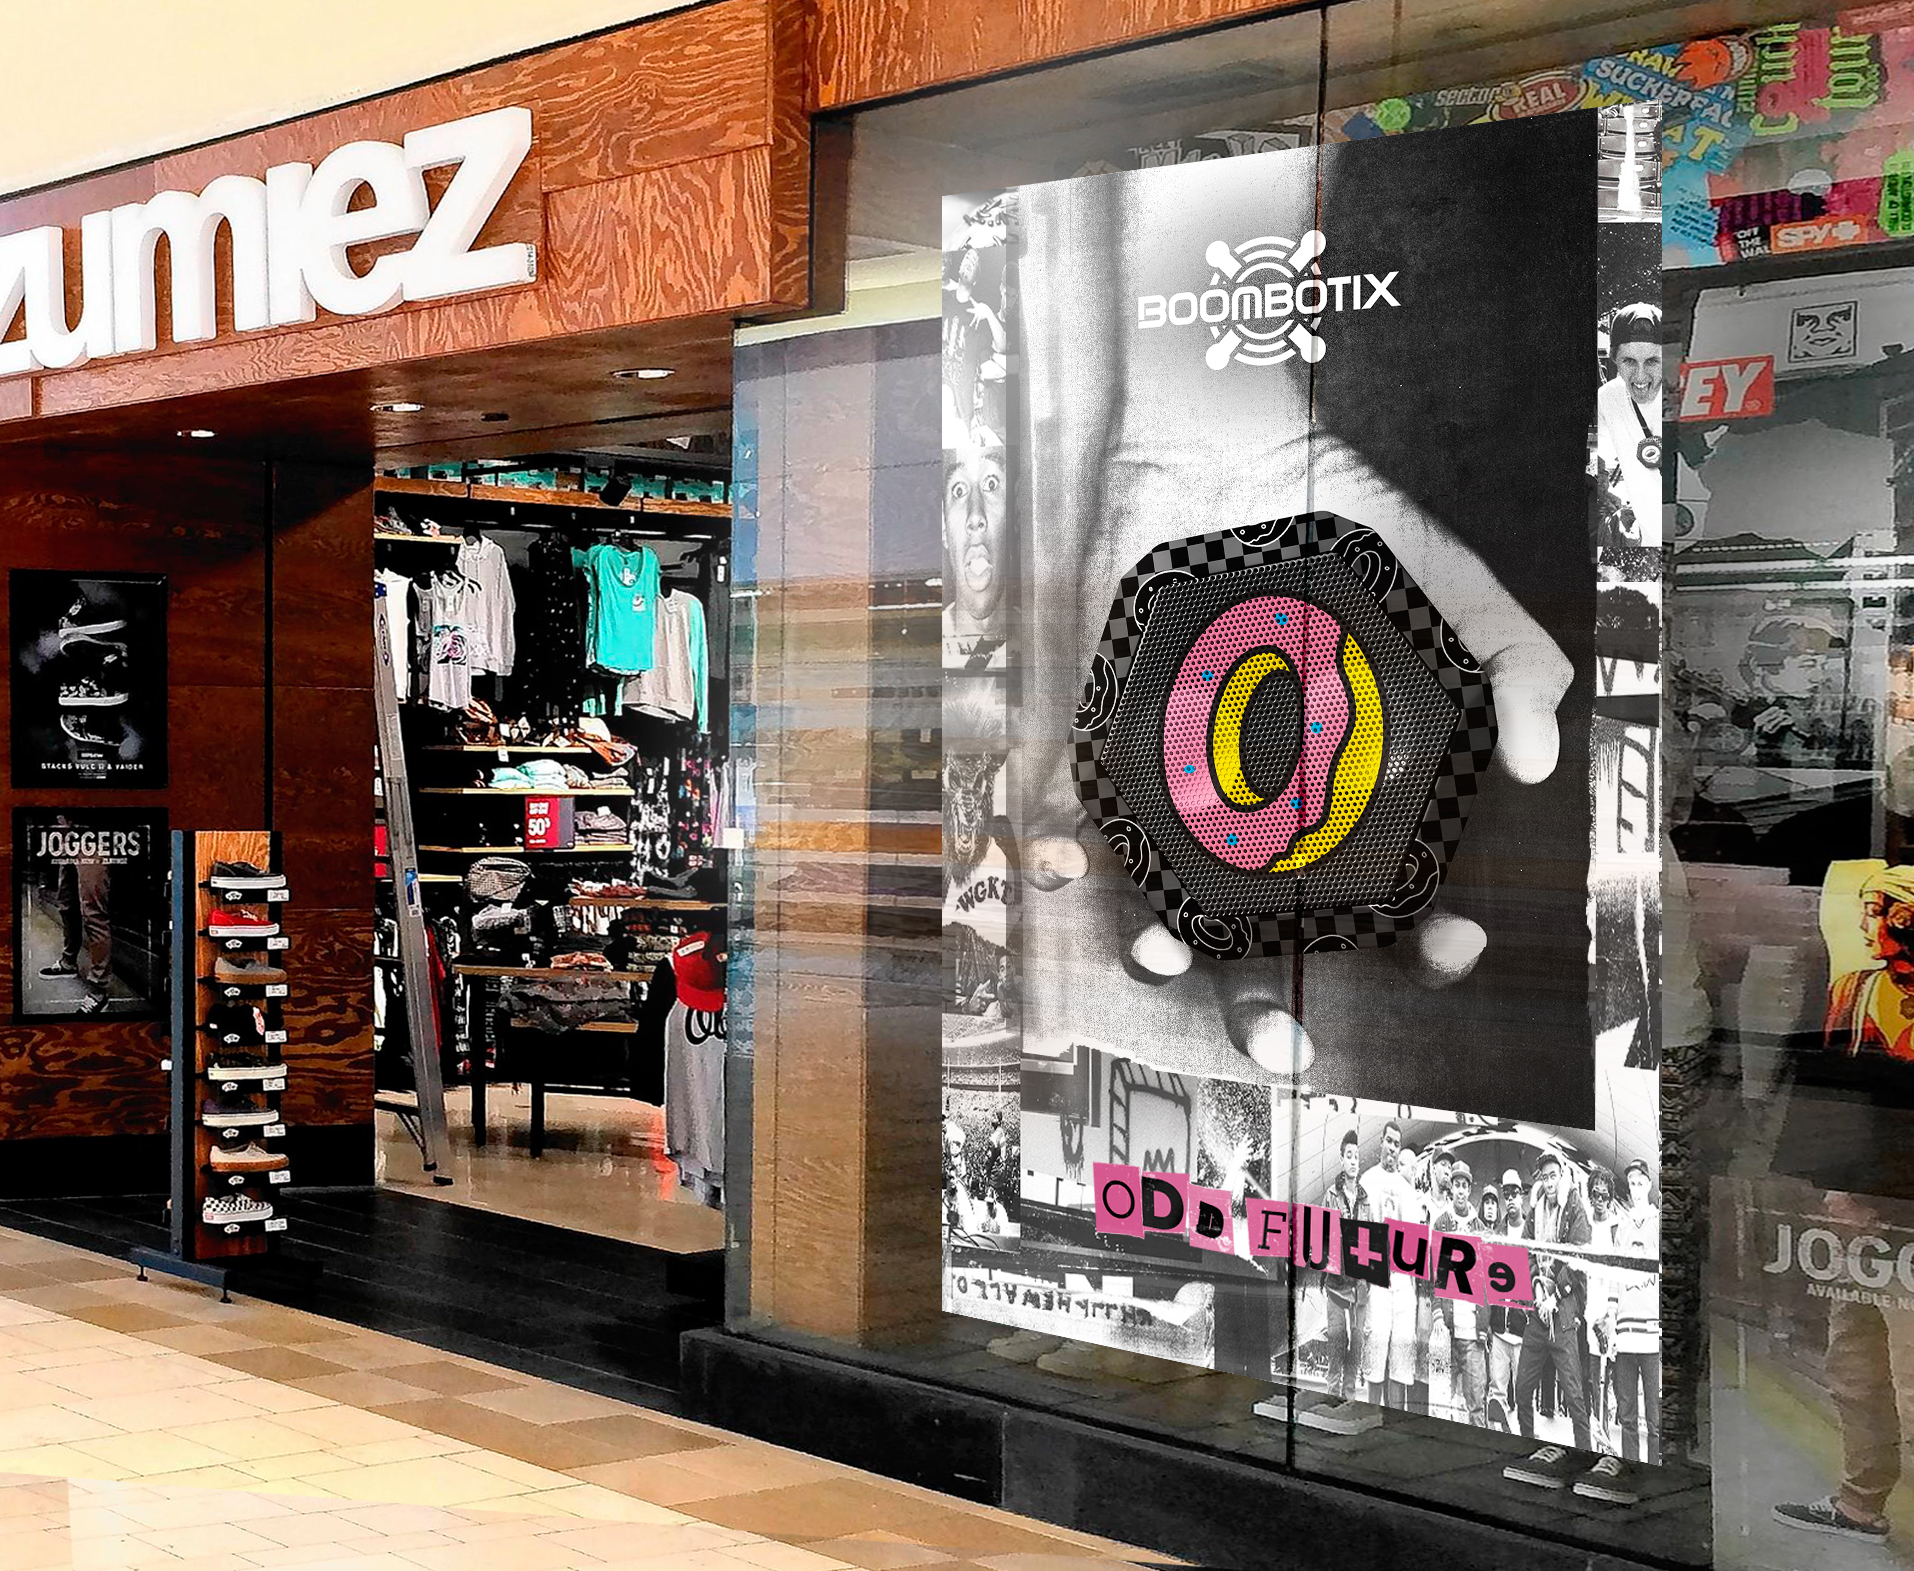 Boombotix oddfuture speaker collaboration advertisement with donut and checkerboard graphics on speaker imposed in a black and white grainy hand displayed in zoomies store